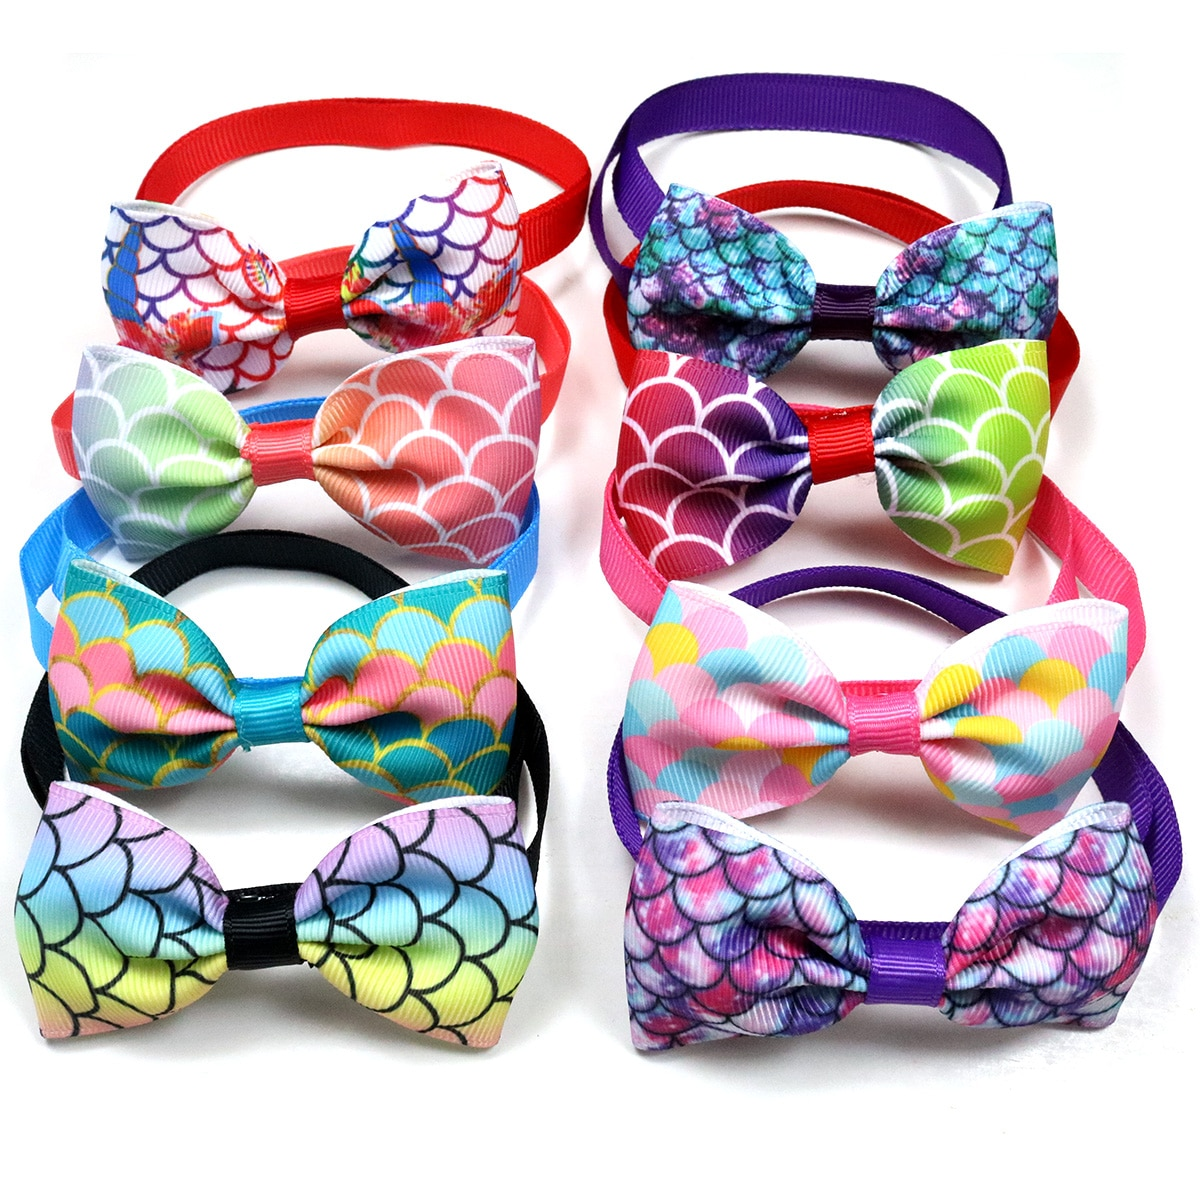 10PCS Cute Pet Dog Cat Bow Ties Adjustable Fish Scale Patterns Holiday Party Dog Accessories Pet Sup